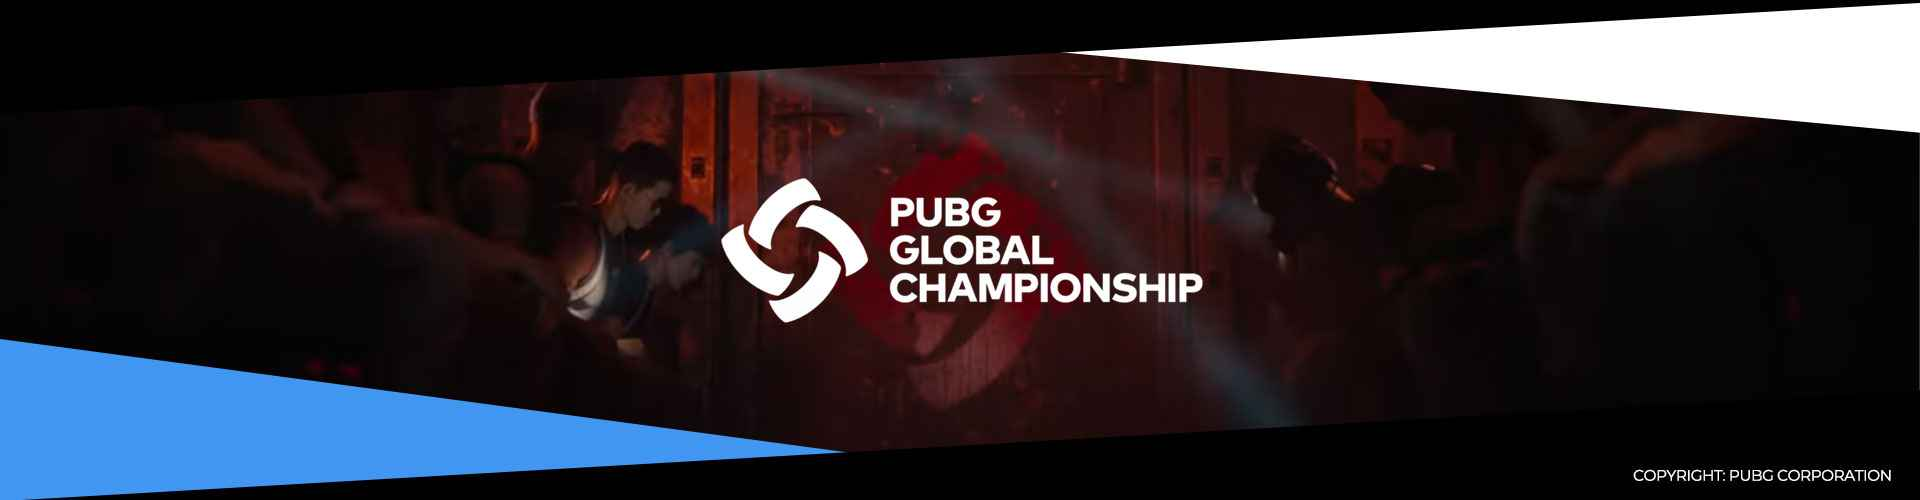 Preview of the 2019 PUBG Global Championship